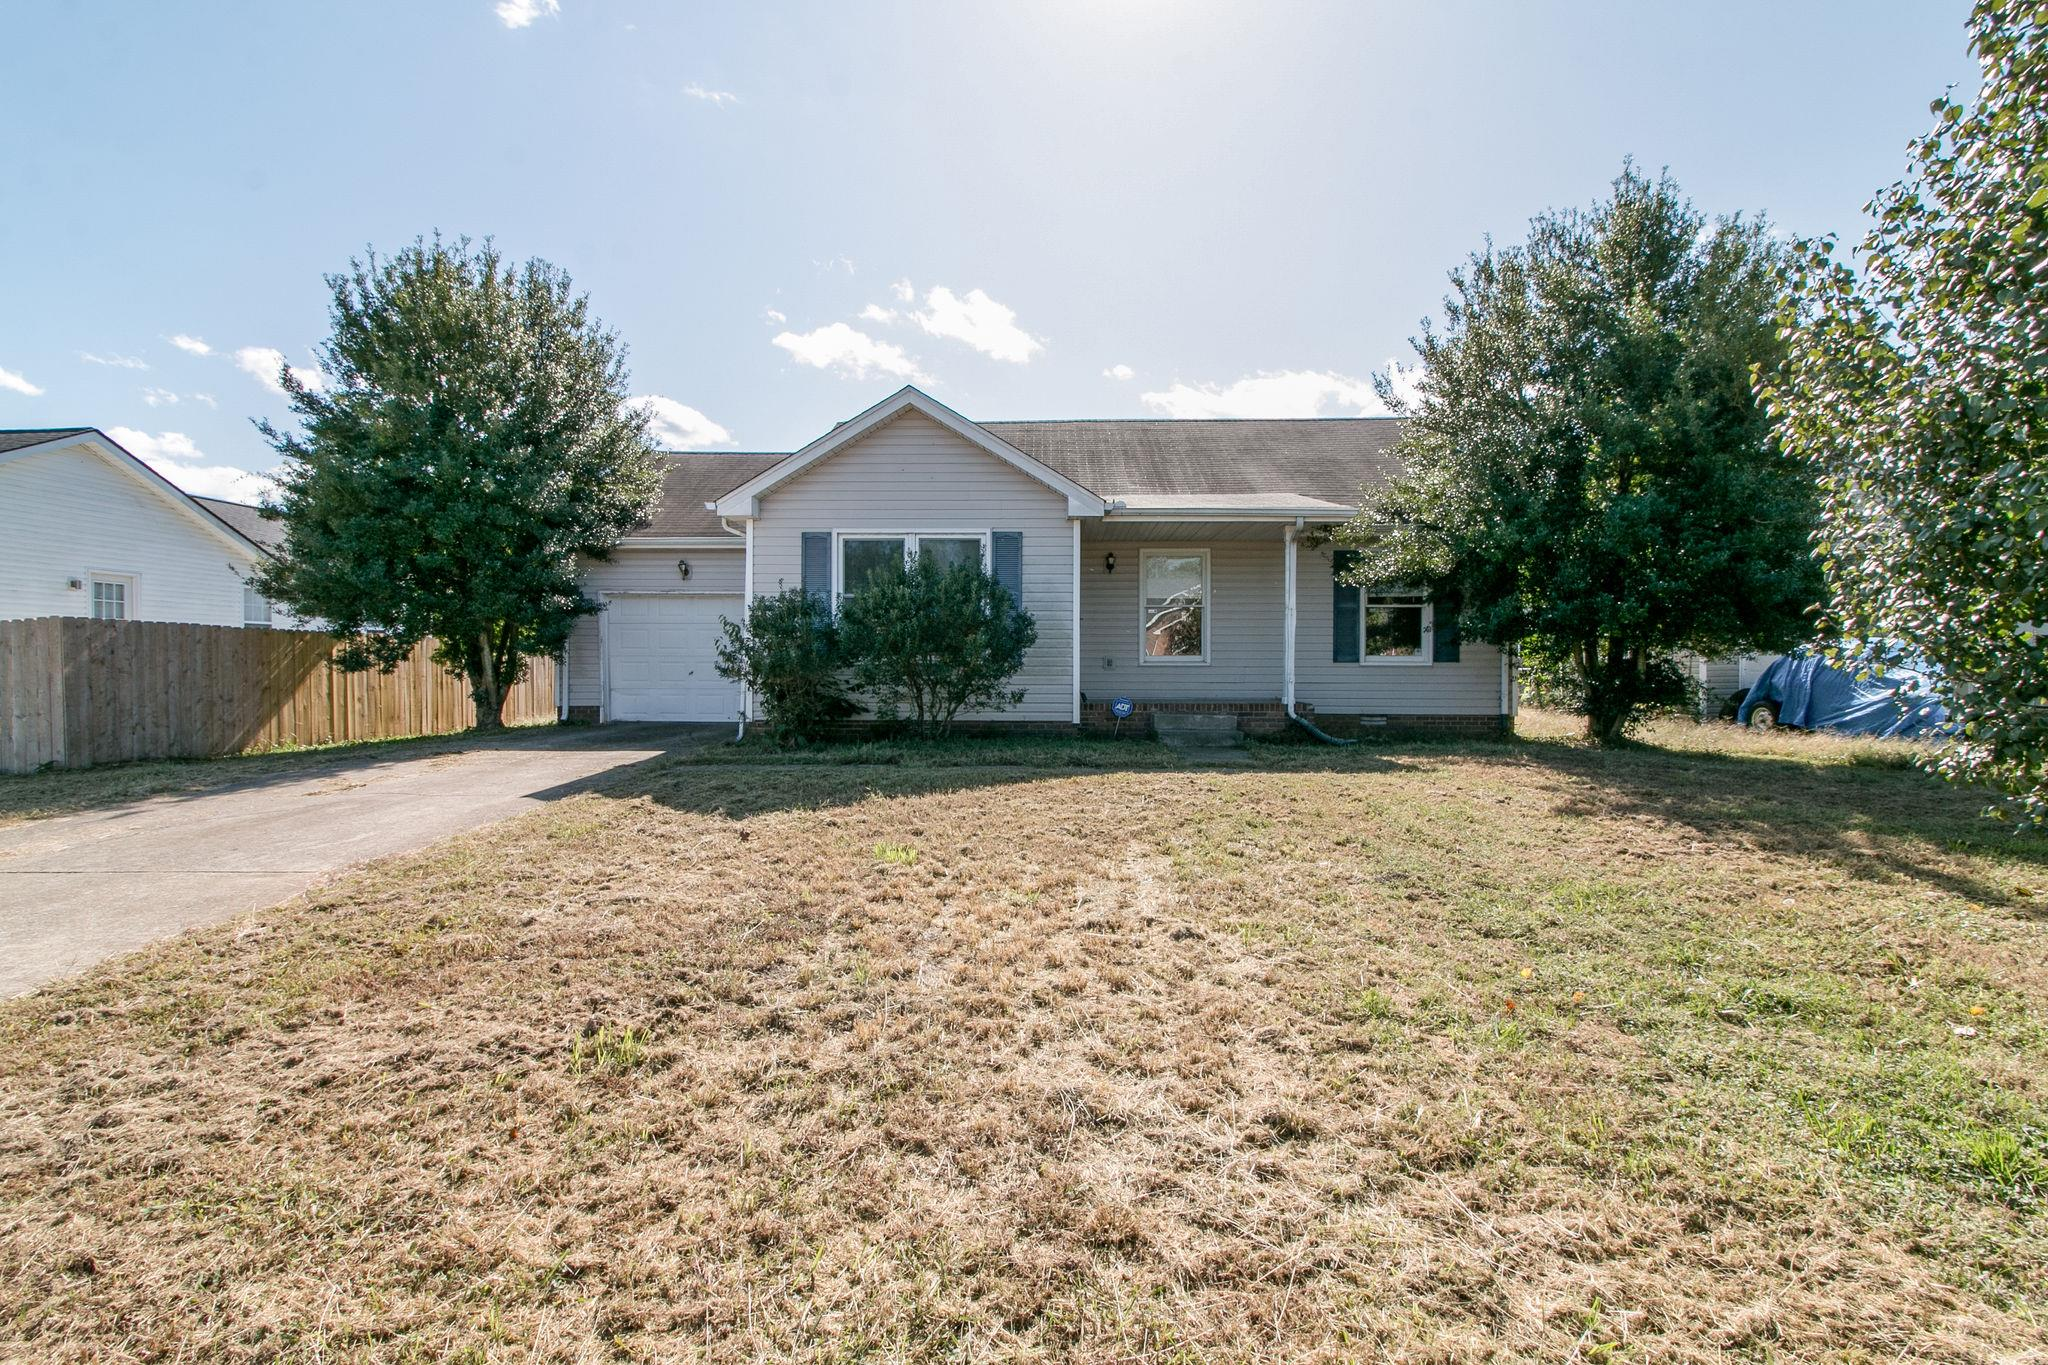 3208 Tabby Dr, Clarksville, TN 37042 - Clarksville, TN real estate listing